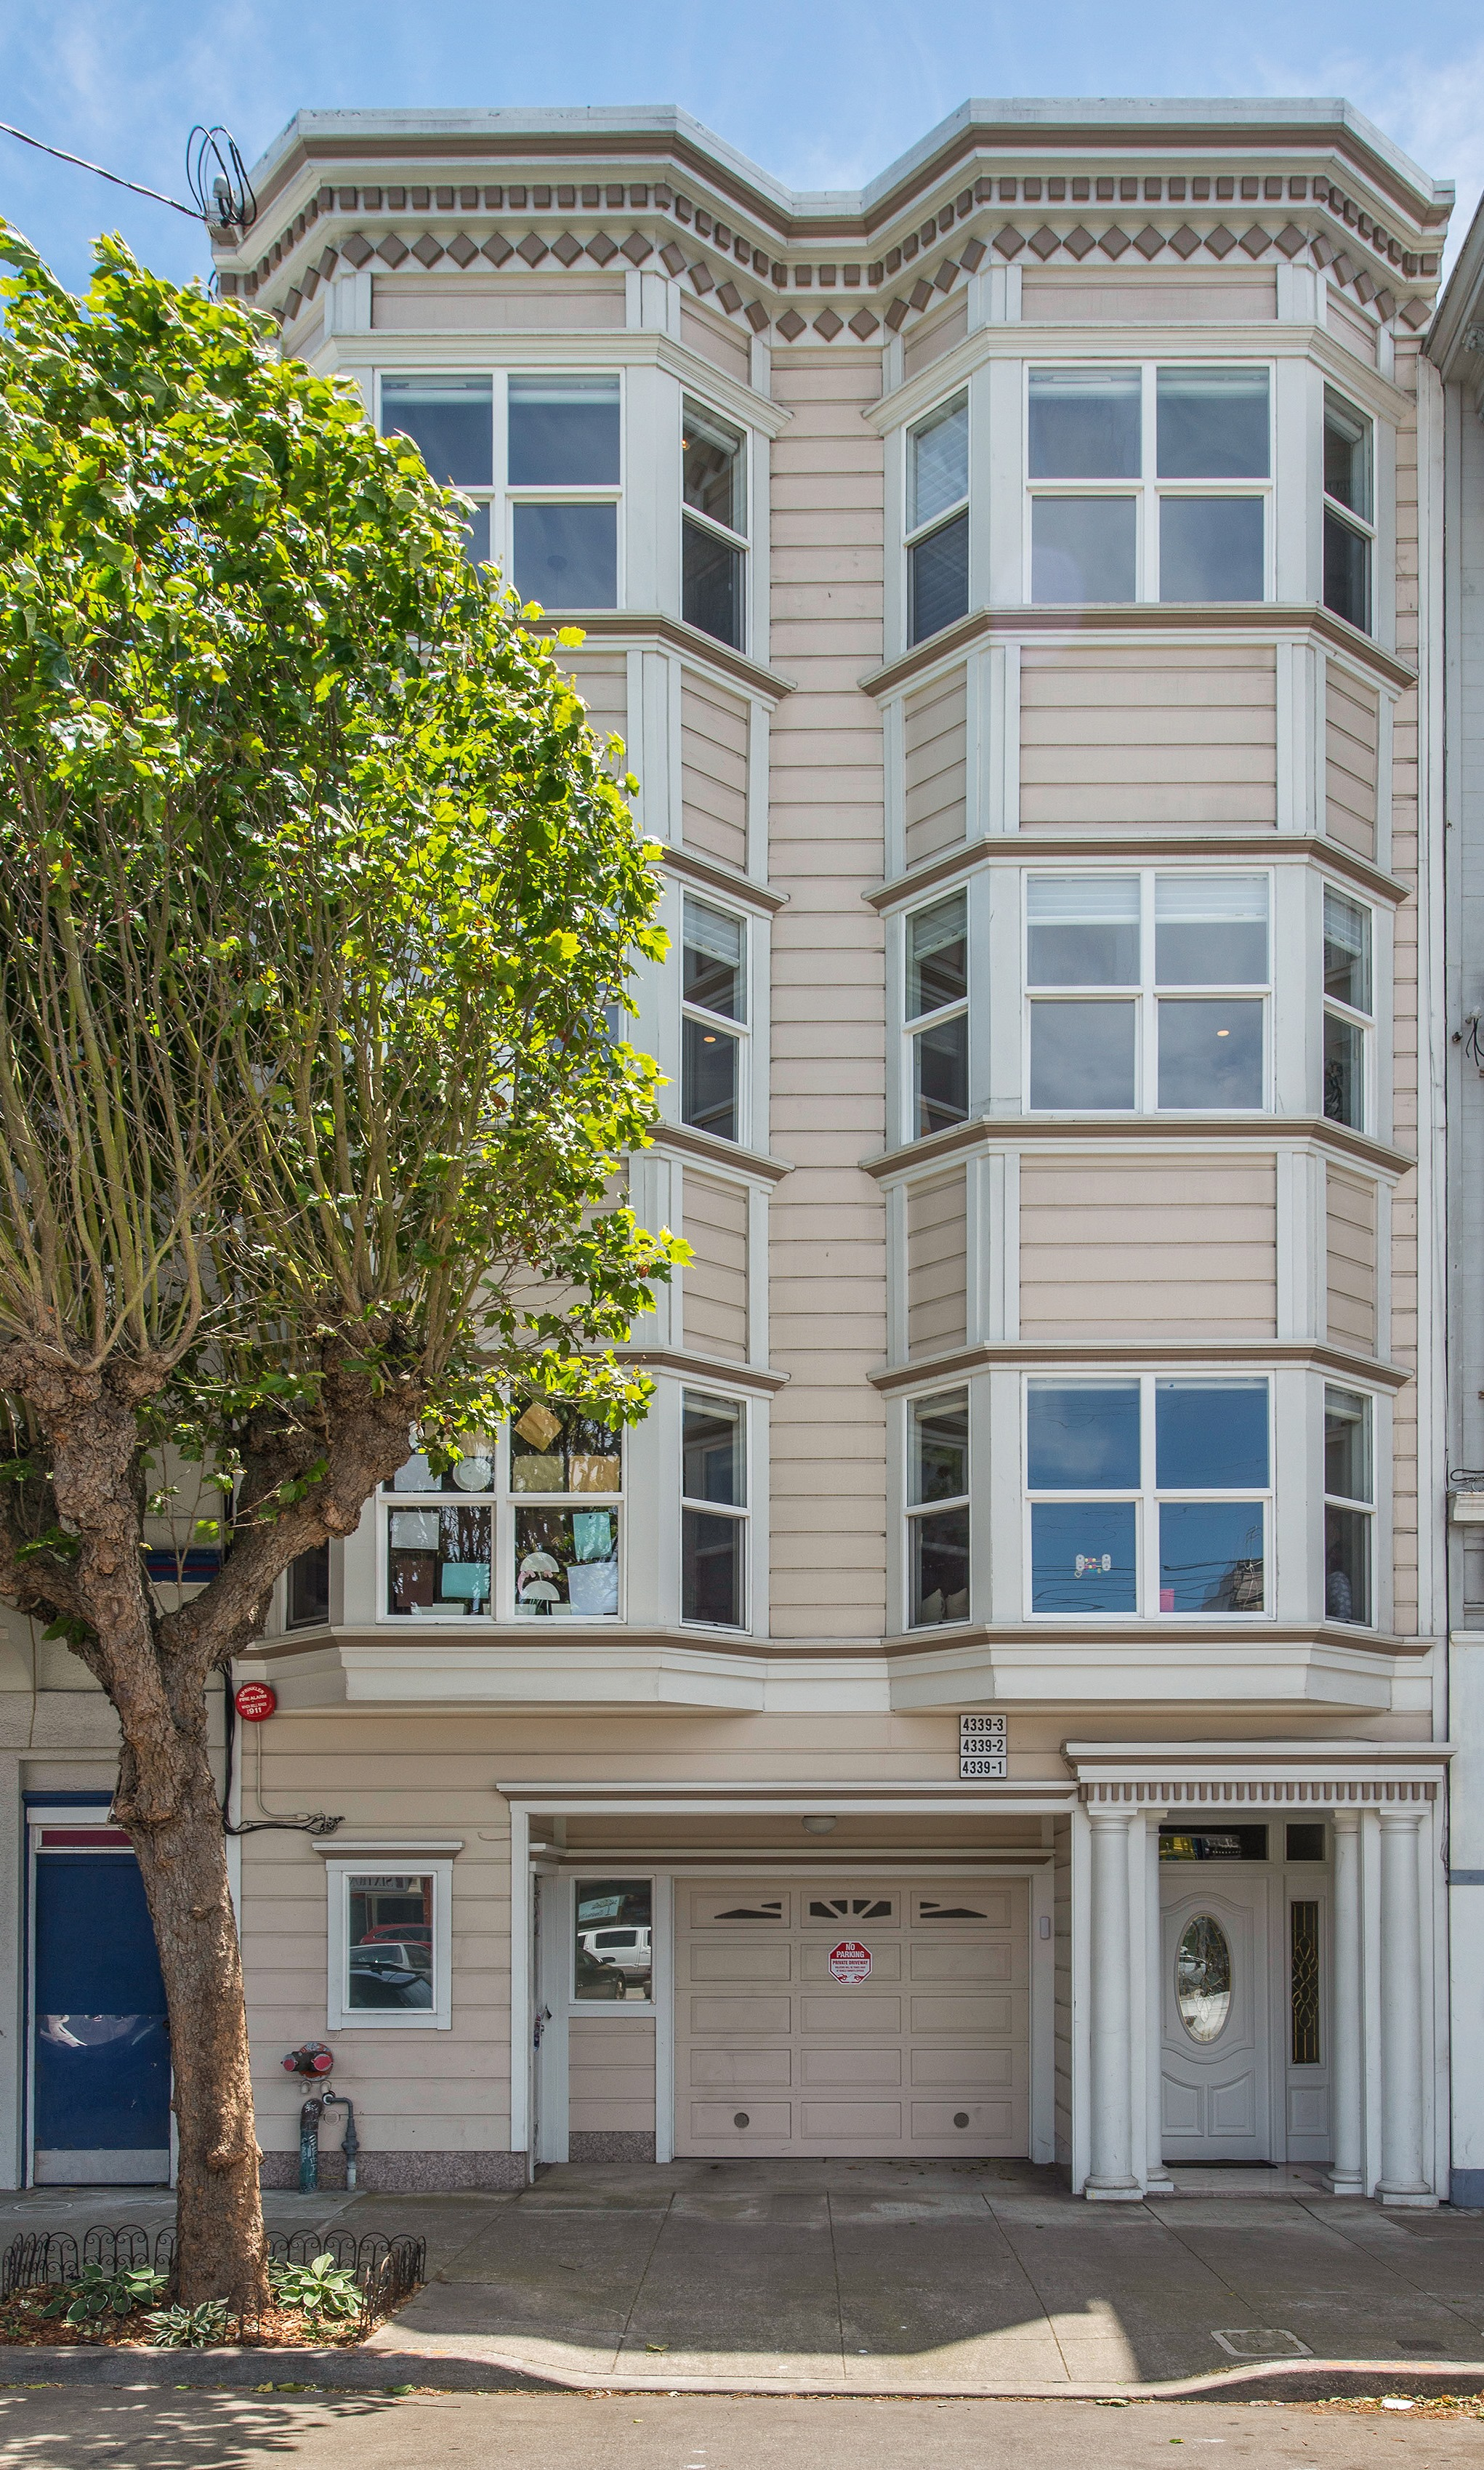 Home for Sale San Francisco CA 94118 | PARAGON Real Estate Group